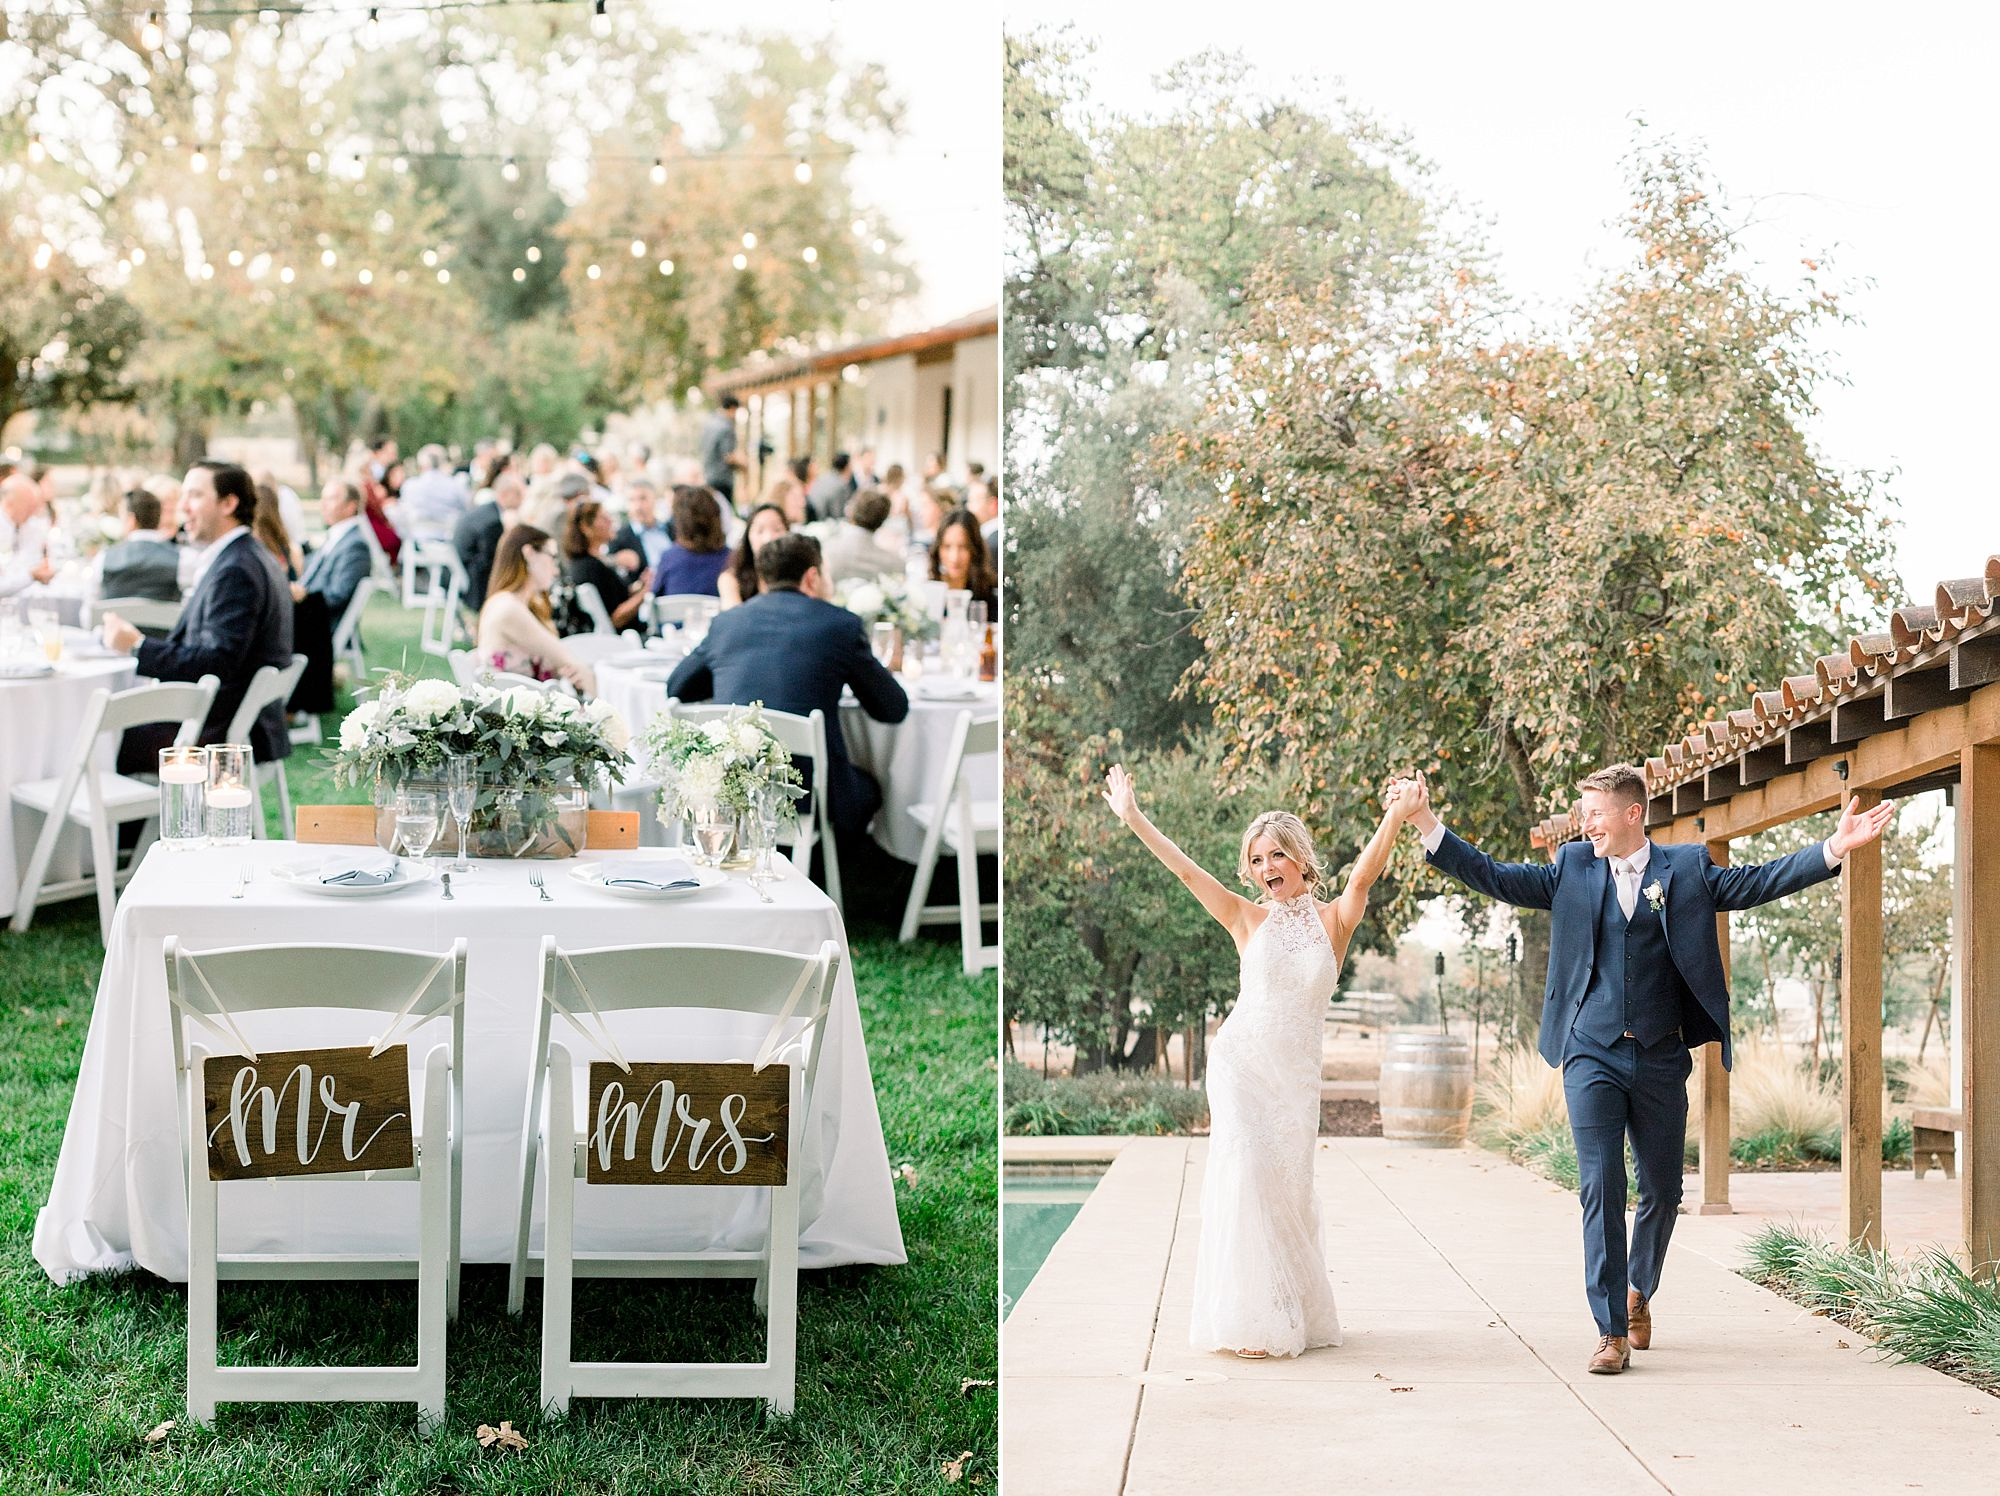 The Maples Wedding in Woodland California - Ashley Baumgartner - Sacramento Wedding Photographer - Sacramento Film Photographer_0068.jpg